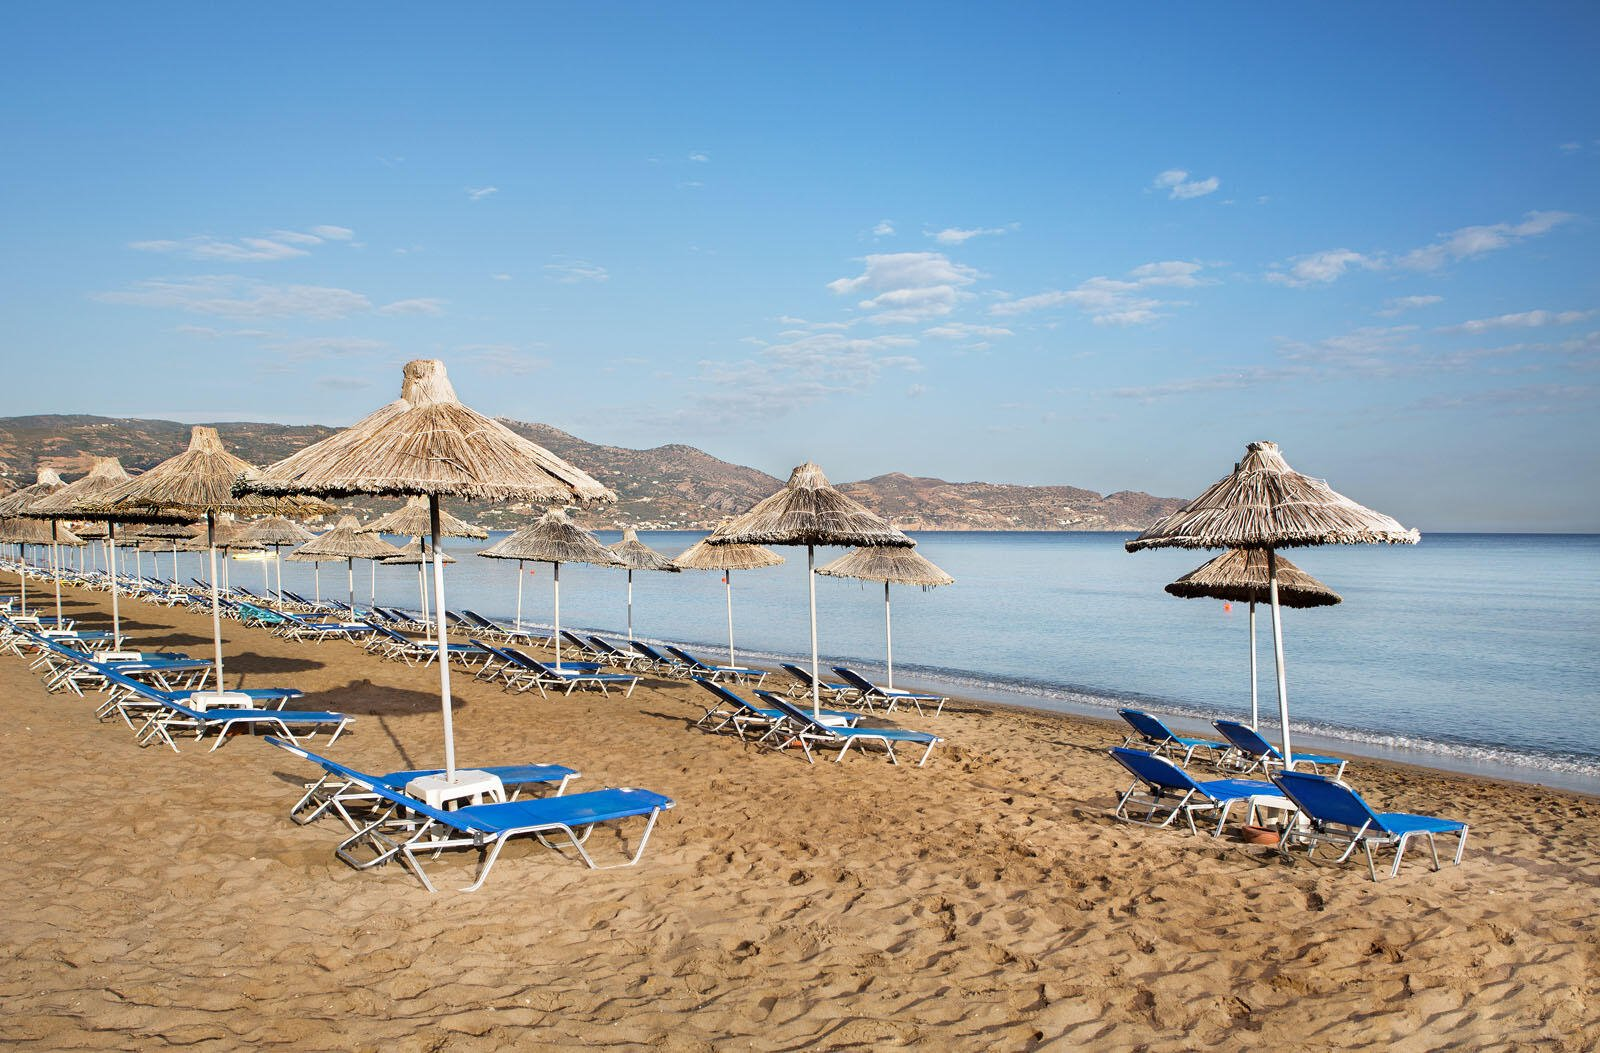 Private beach near Agapi Beach Resort in Crete